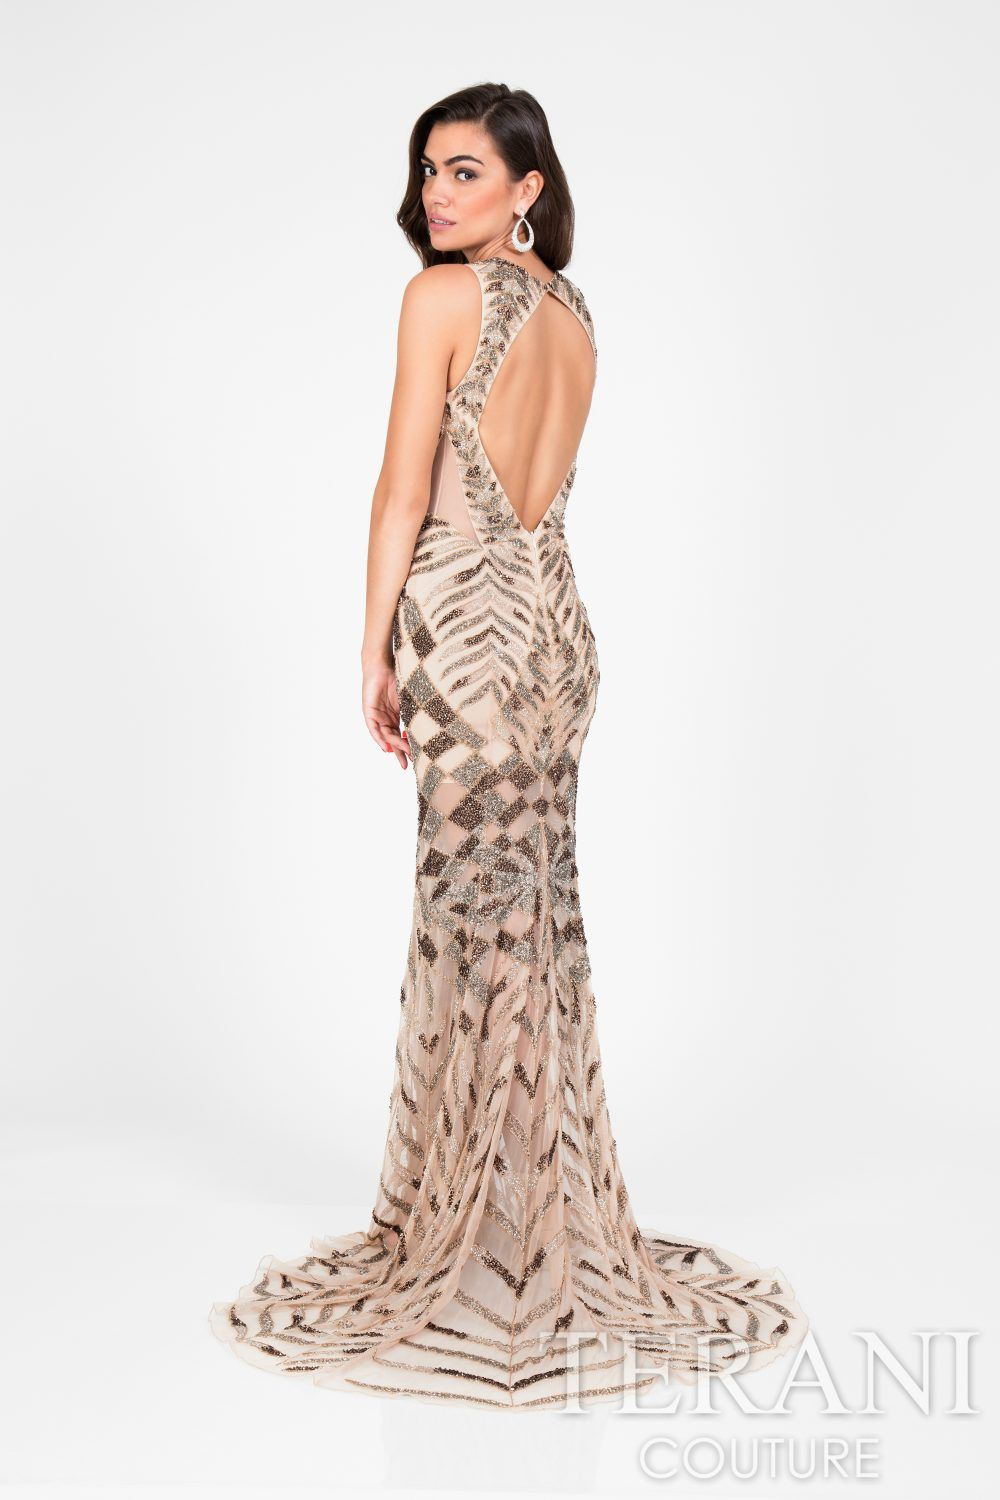 f289c9a5d4 Shop more designer prom and evening dresses at MERANSKI.COM Worldwide  Shipping and local boutique in South Florida!